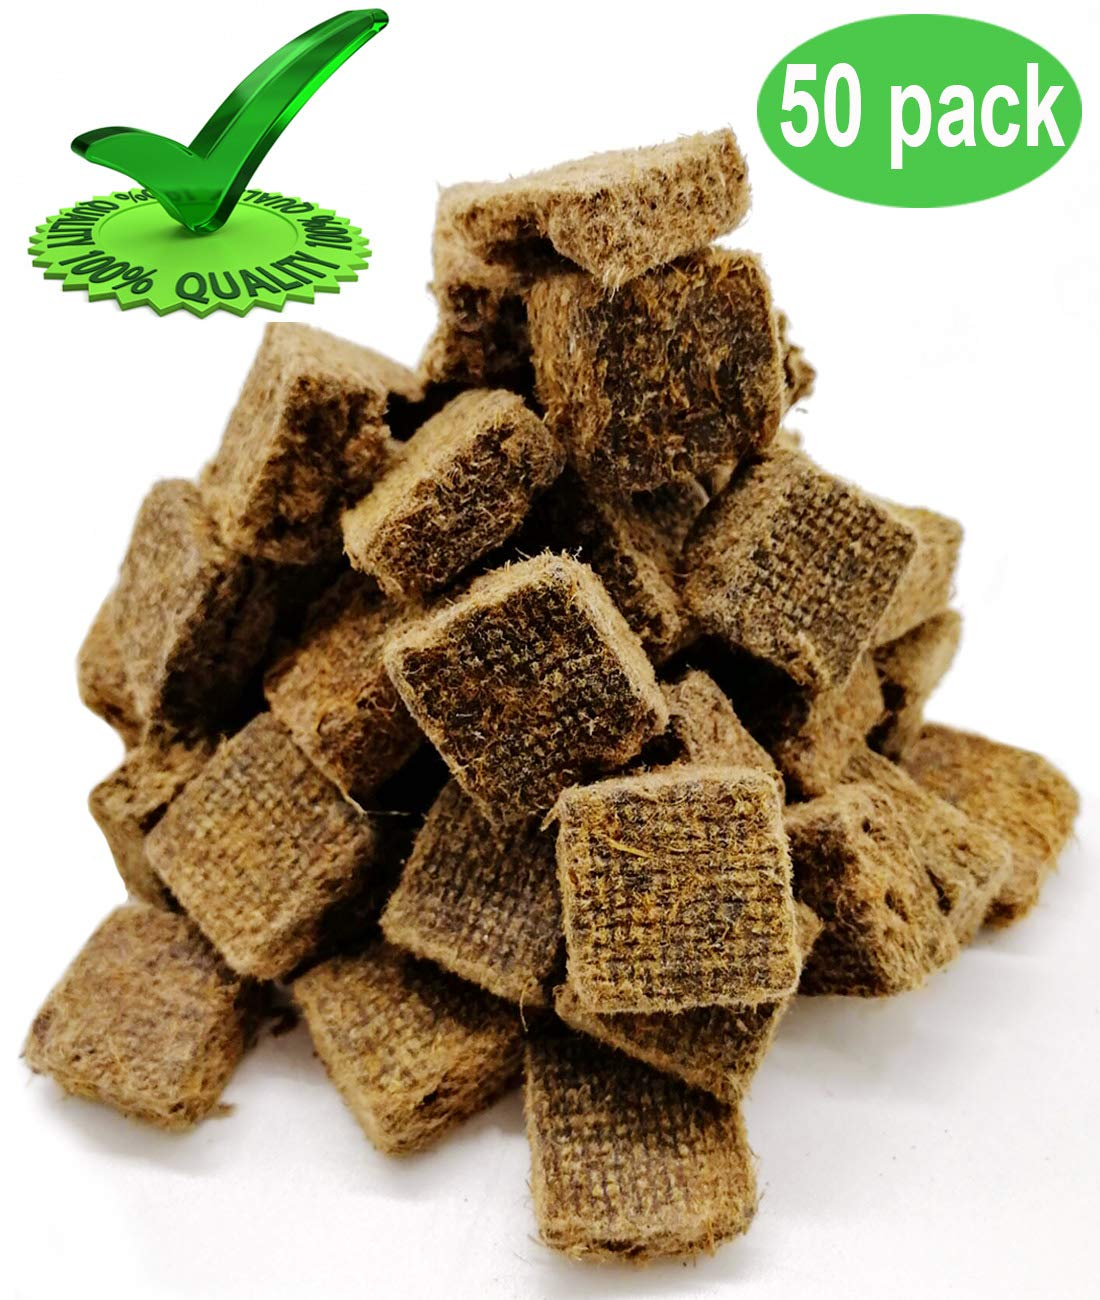 Senneny 100% All Natural Charcoal Starters 50 Cubes Fire Starter for BBQ Grill Smoker and Kamados